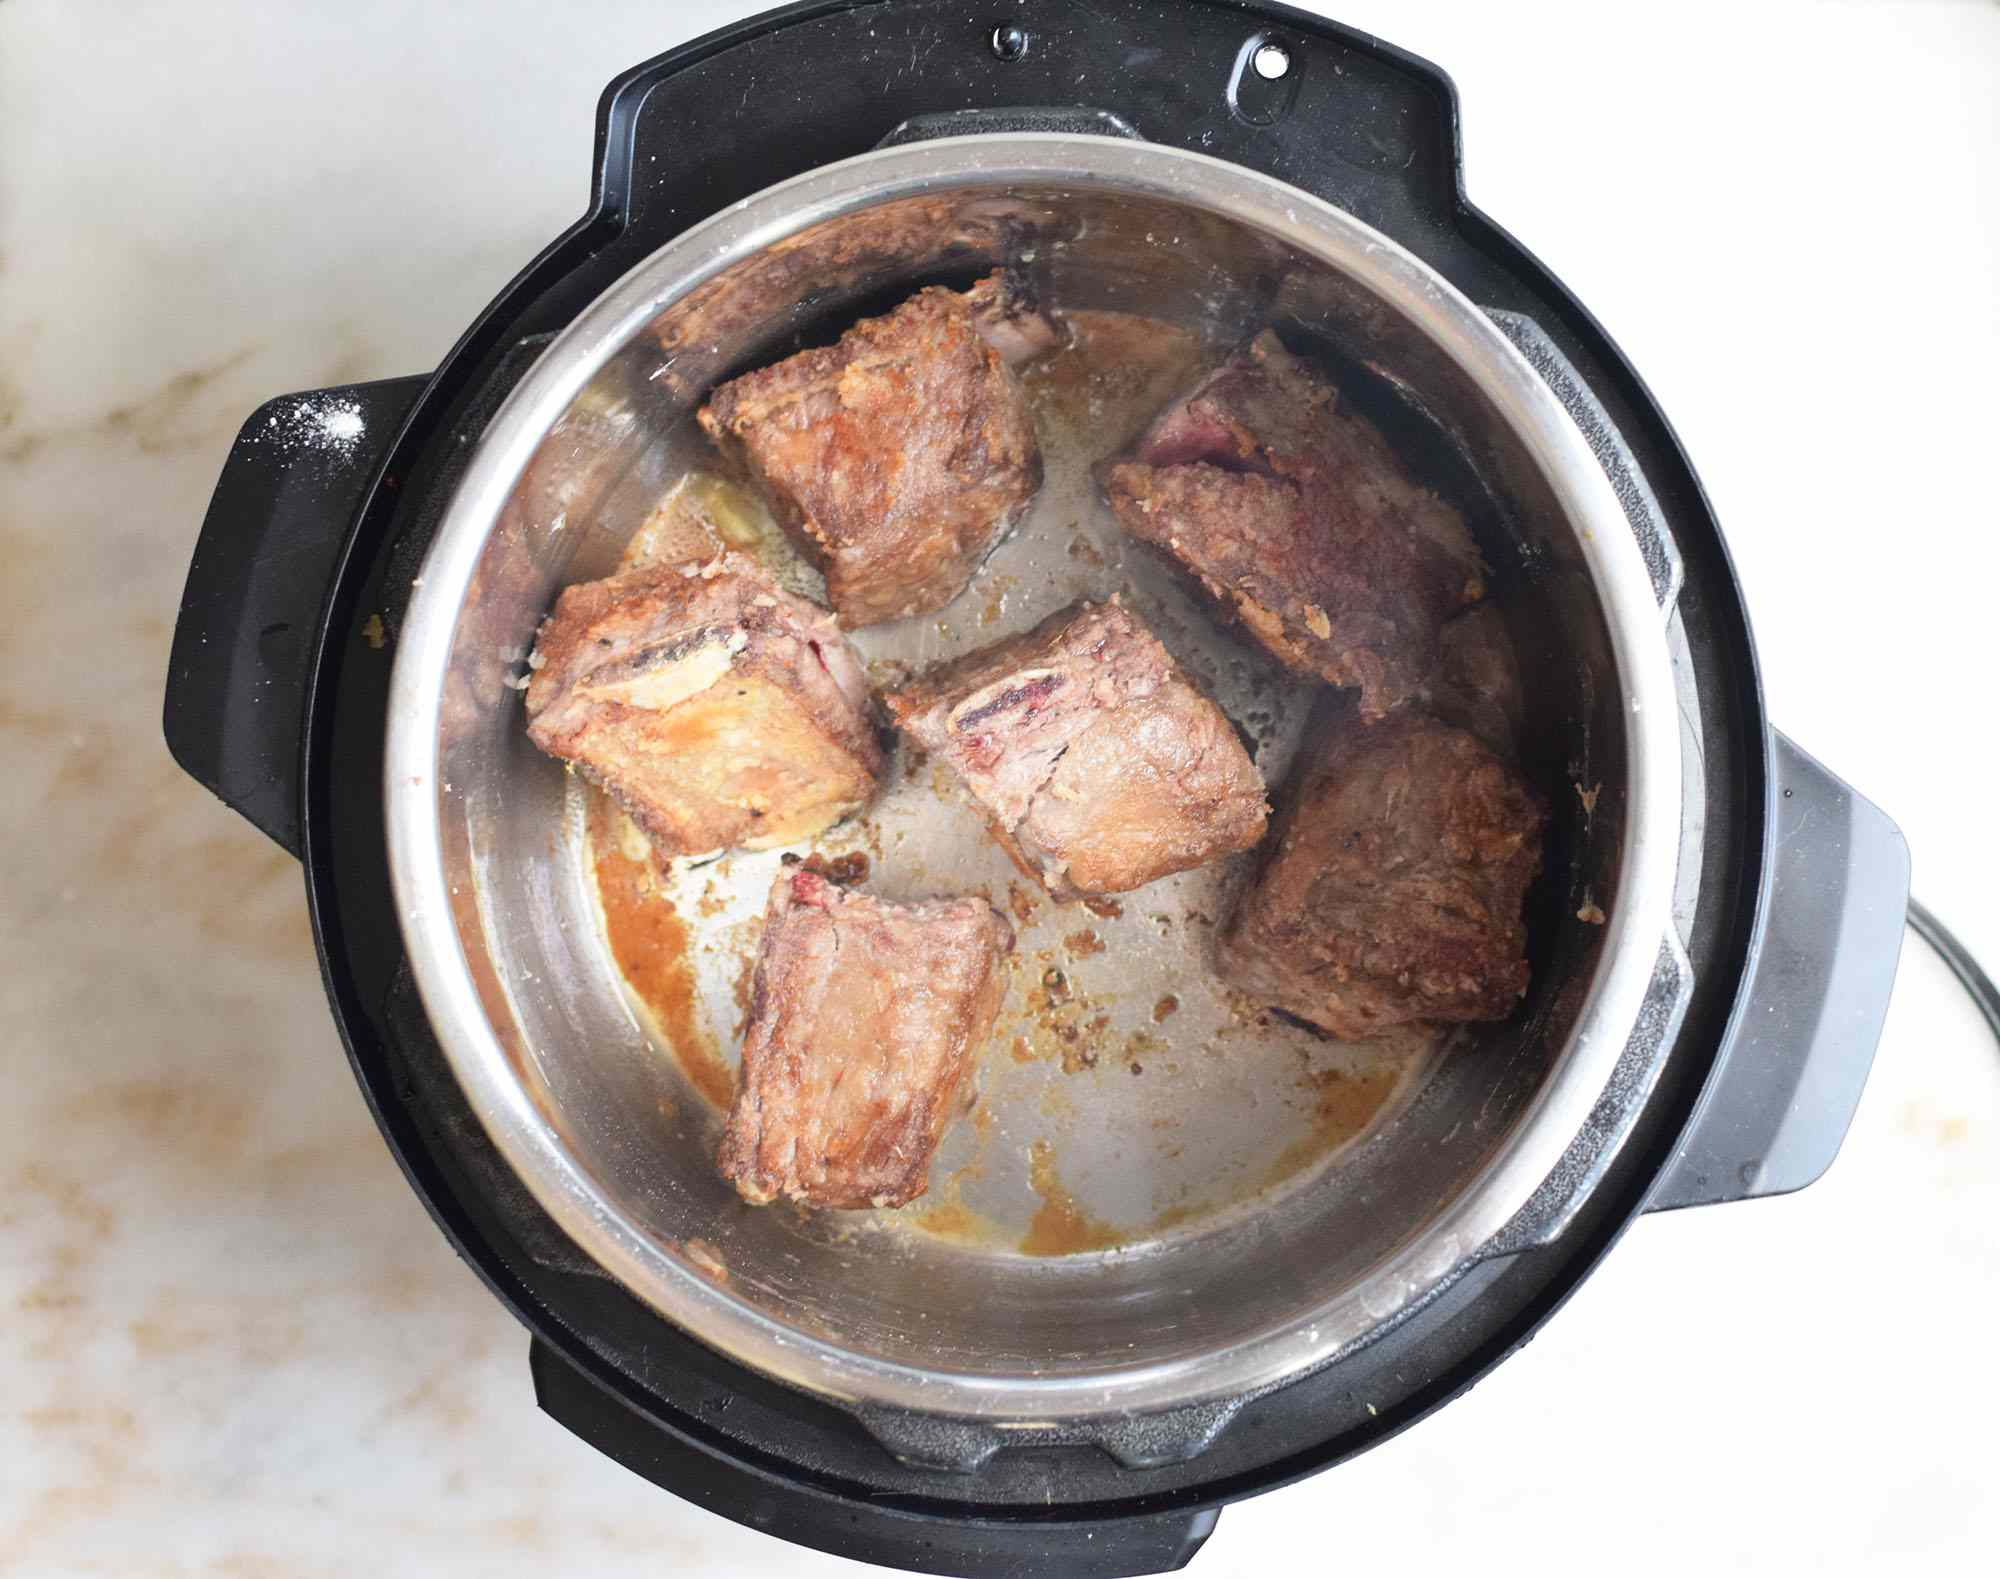 Seared short ribs in an Instant Pot